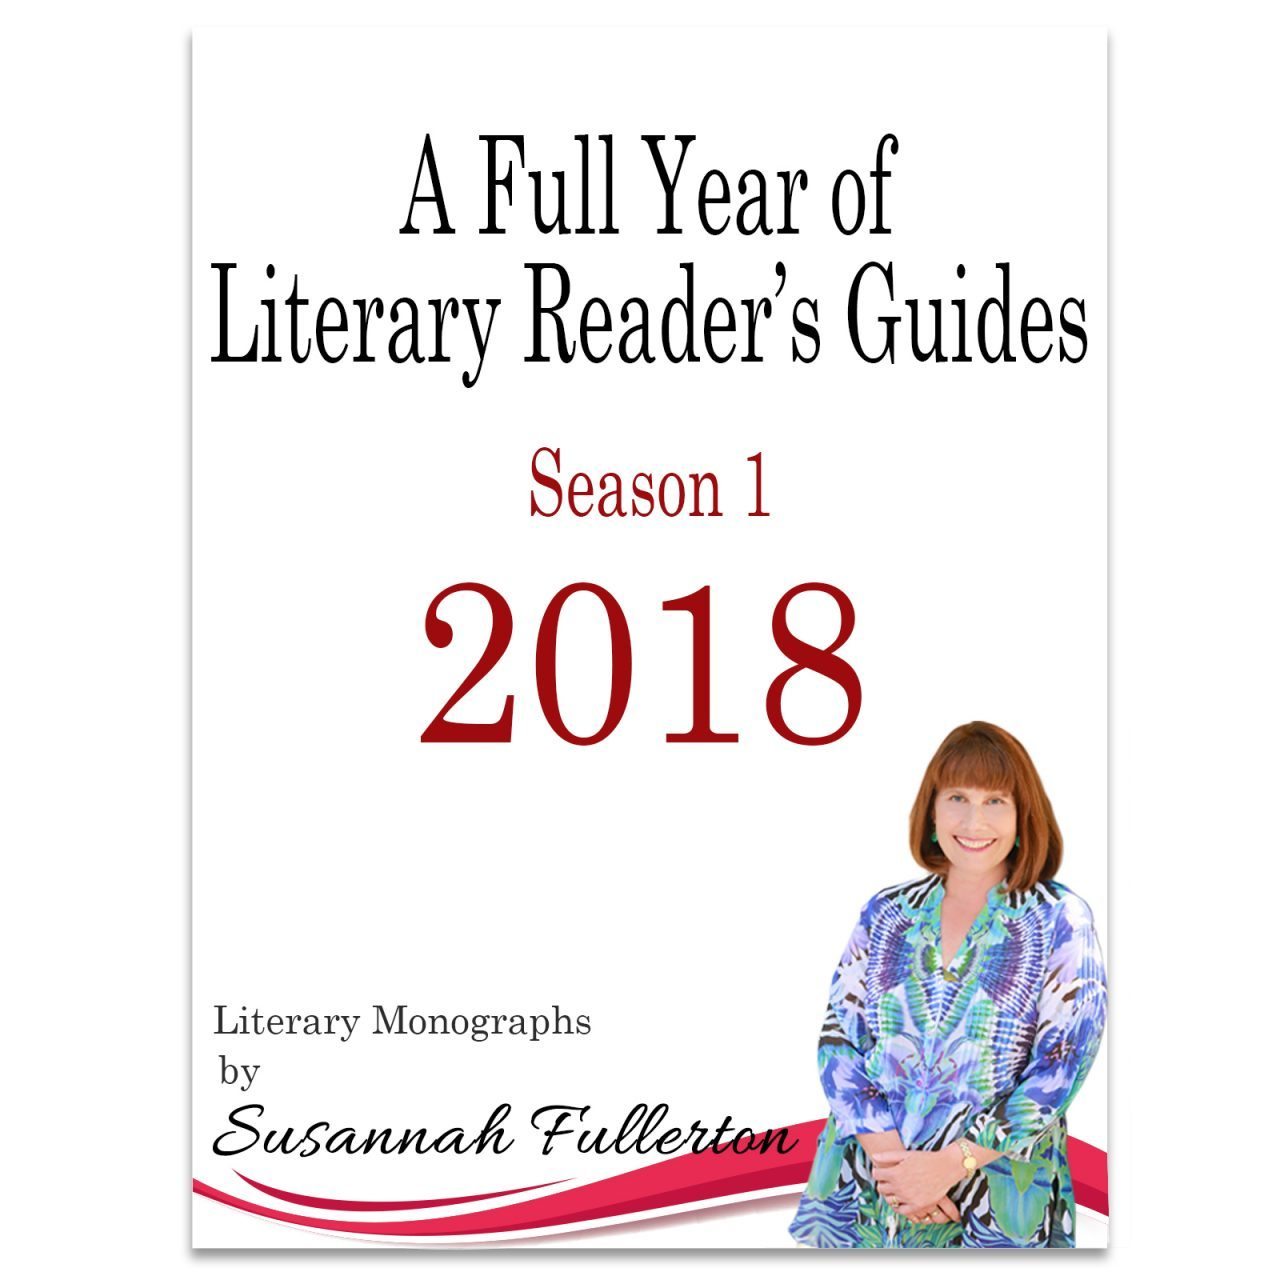 A Full Year of Literary Reader's Guides 2018